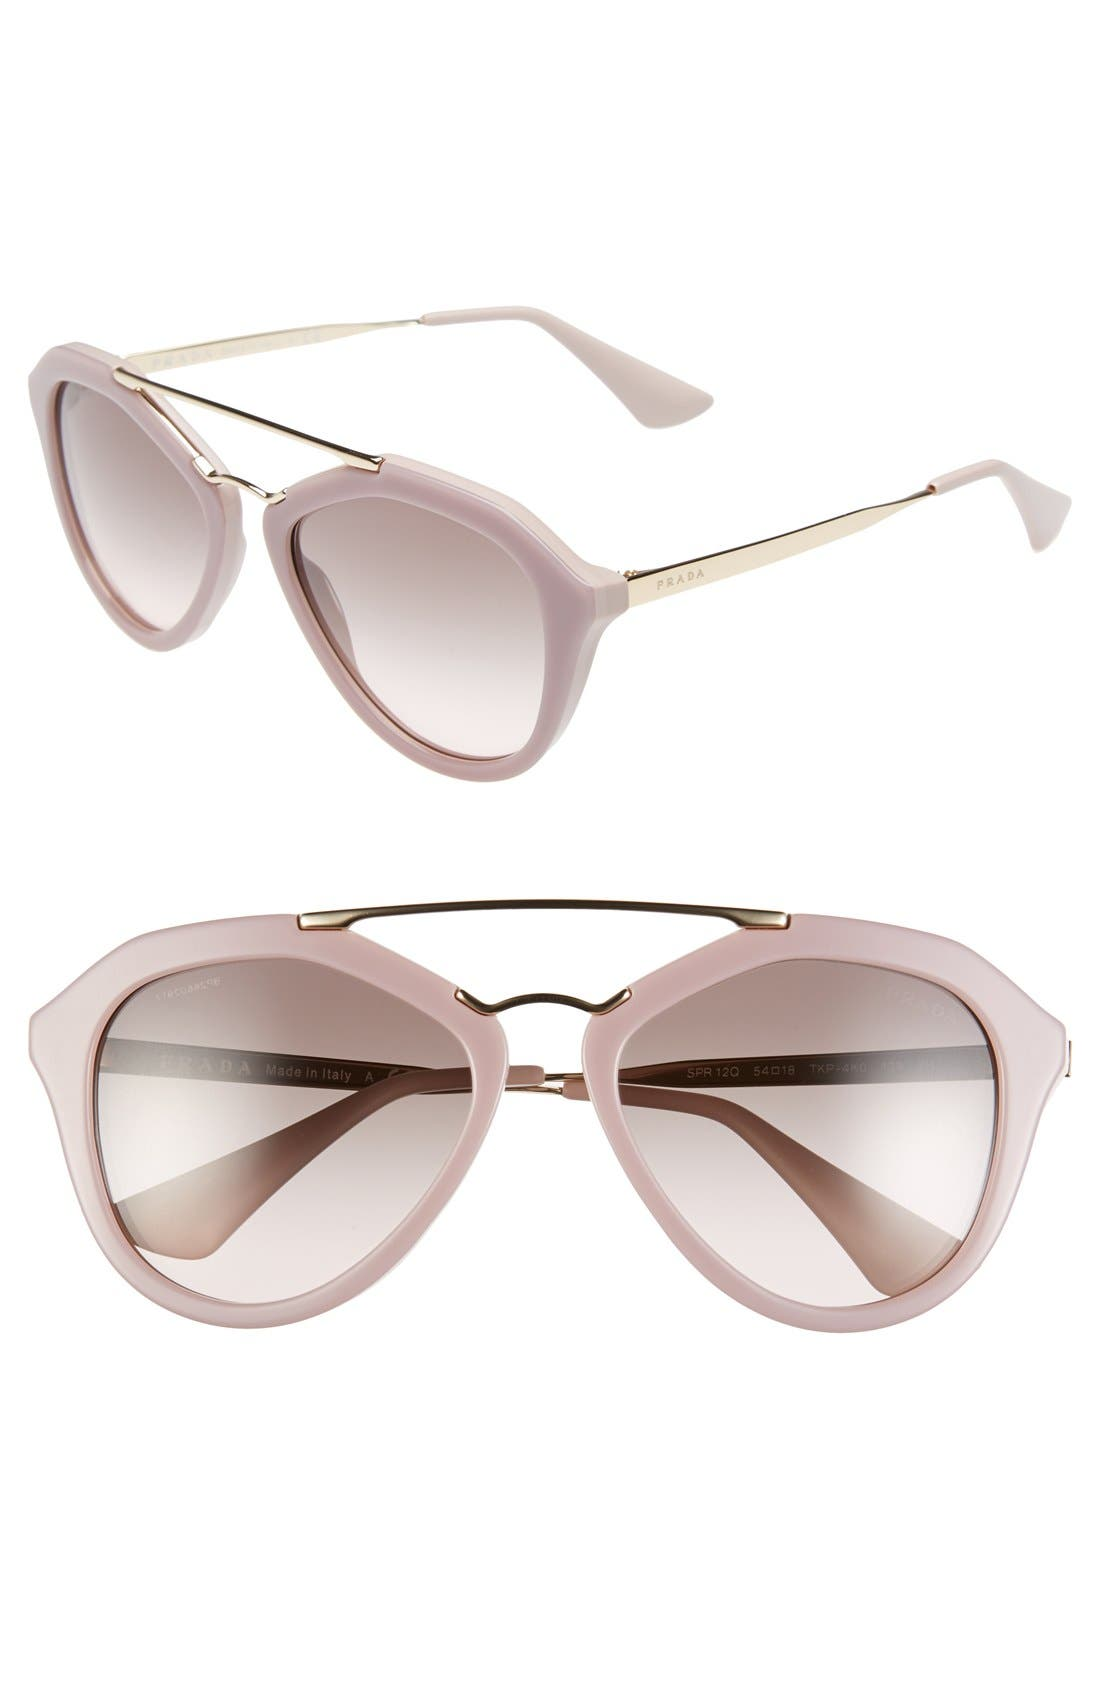 Main Image - Prada 54mm Gradient Lens Sunglasses